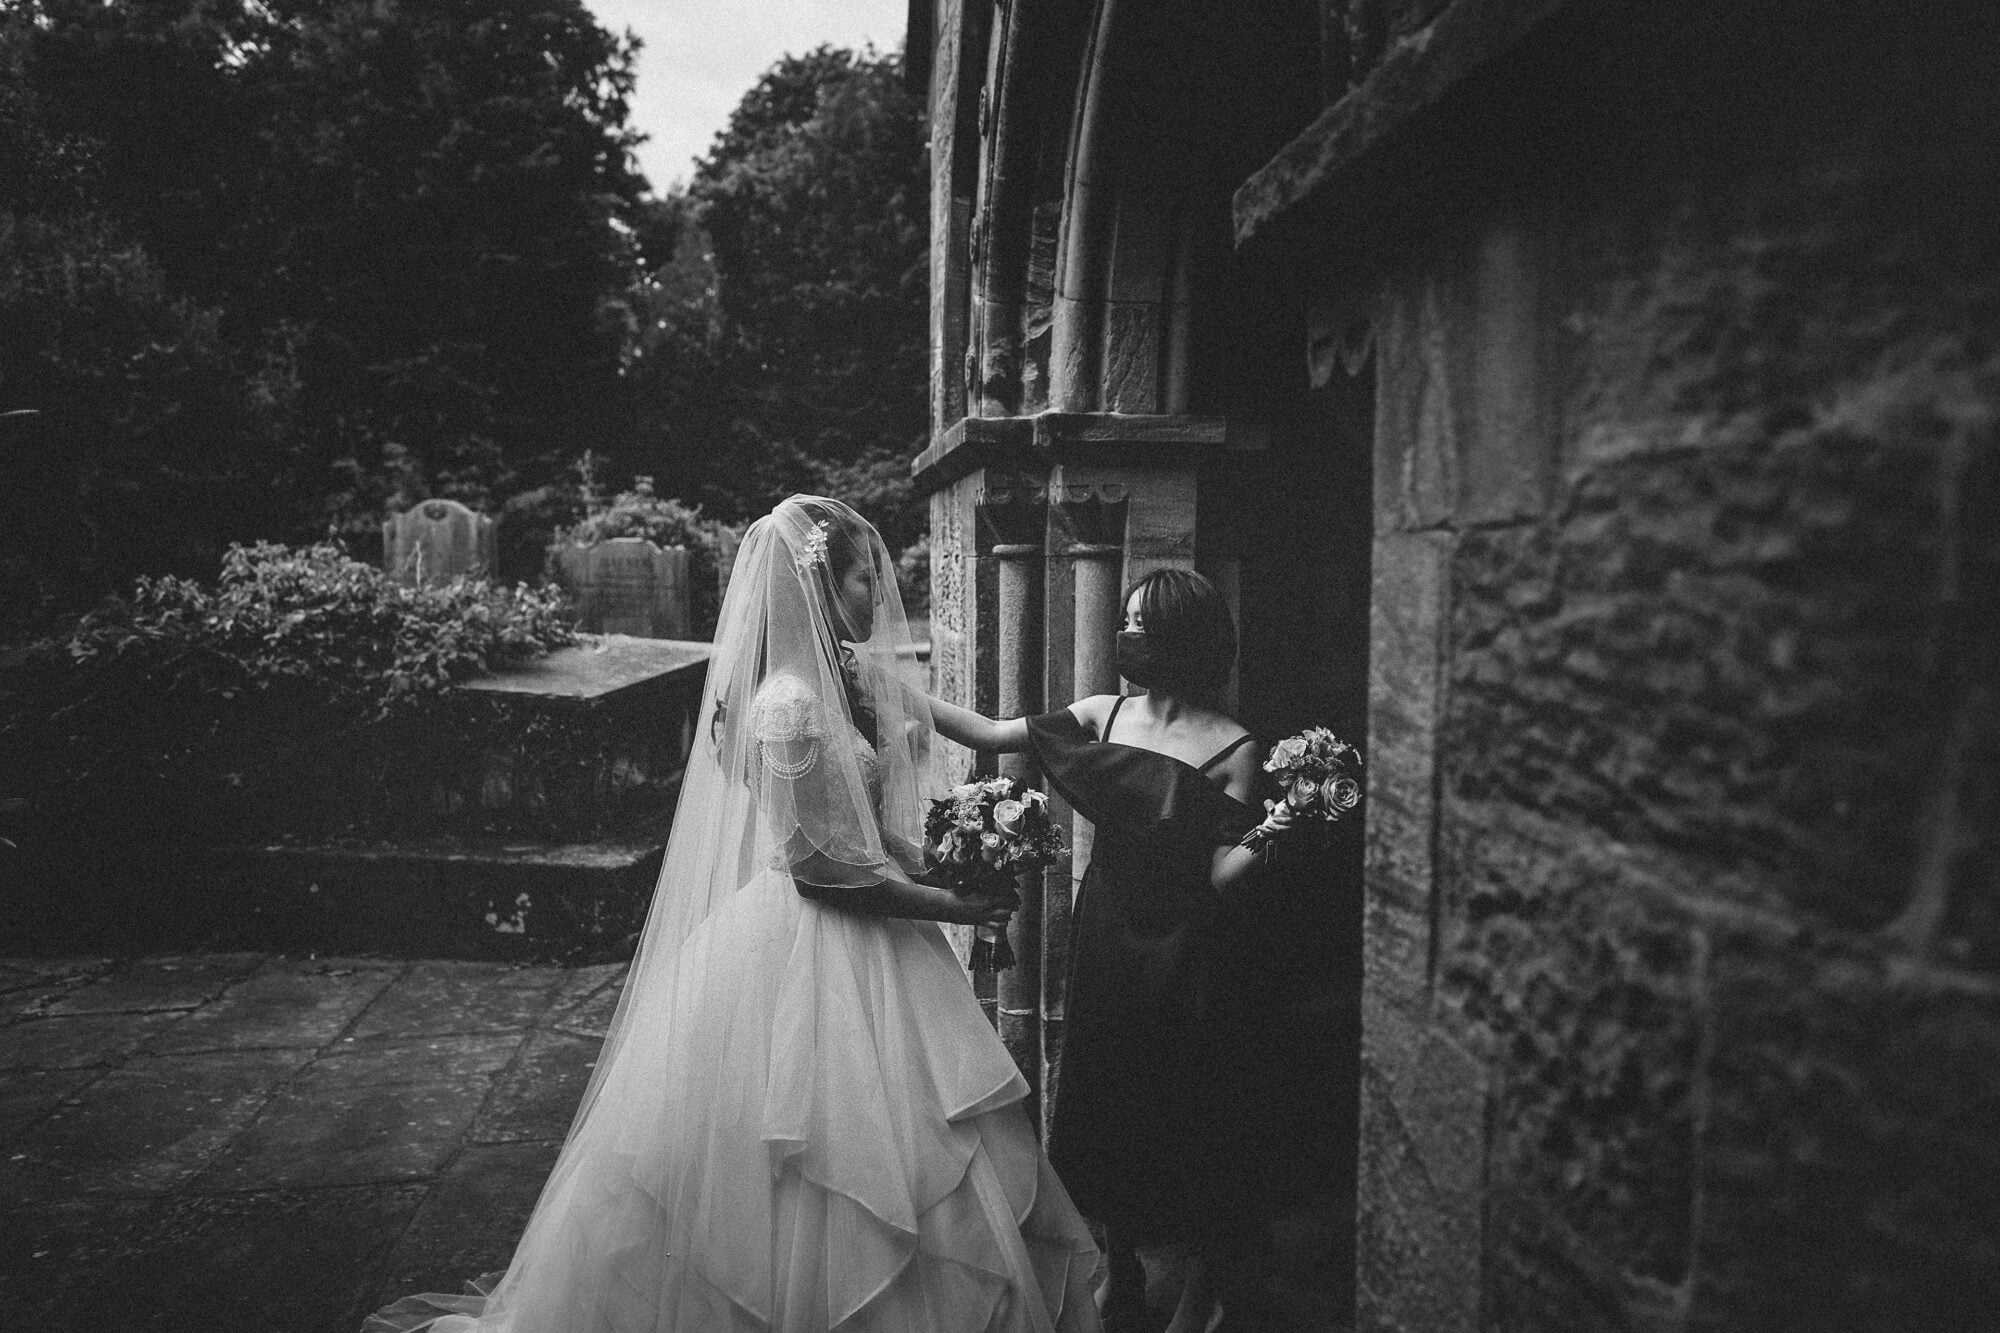 A beautiful shropshire bride awaits outside the church with her bridesmaid